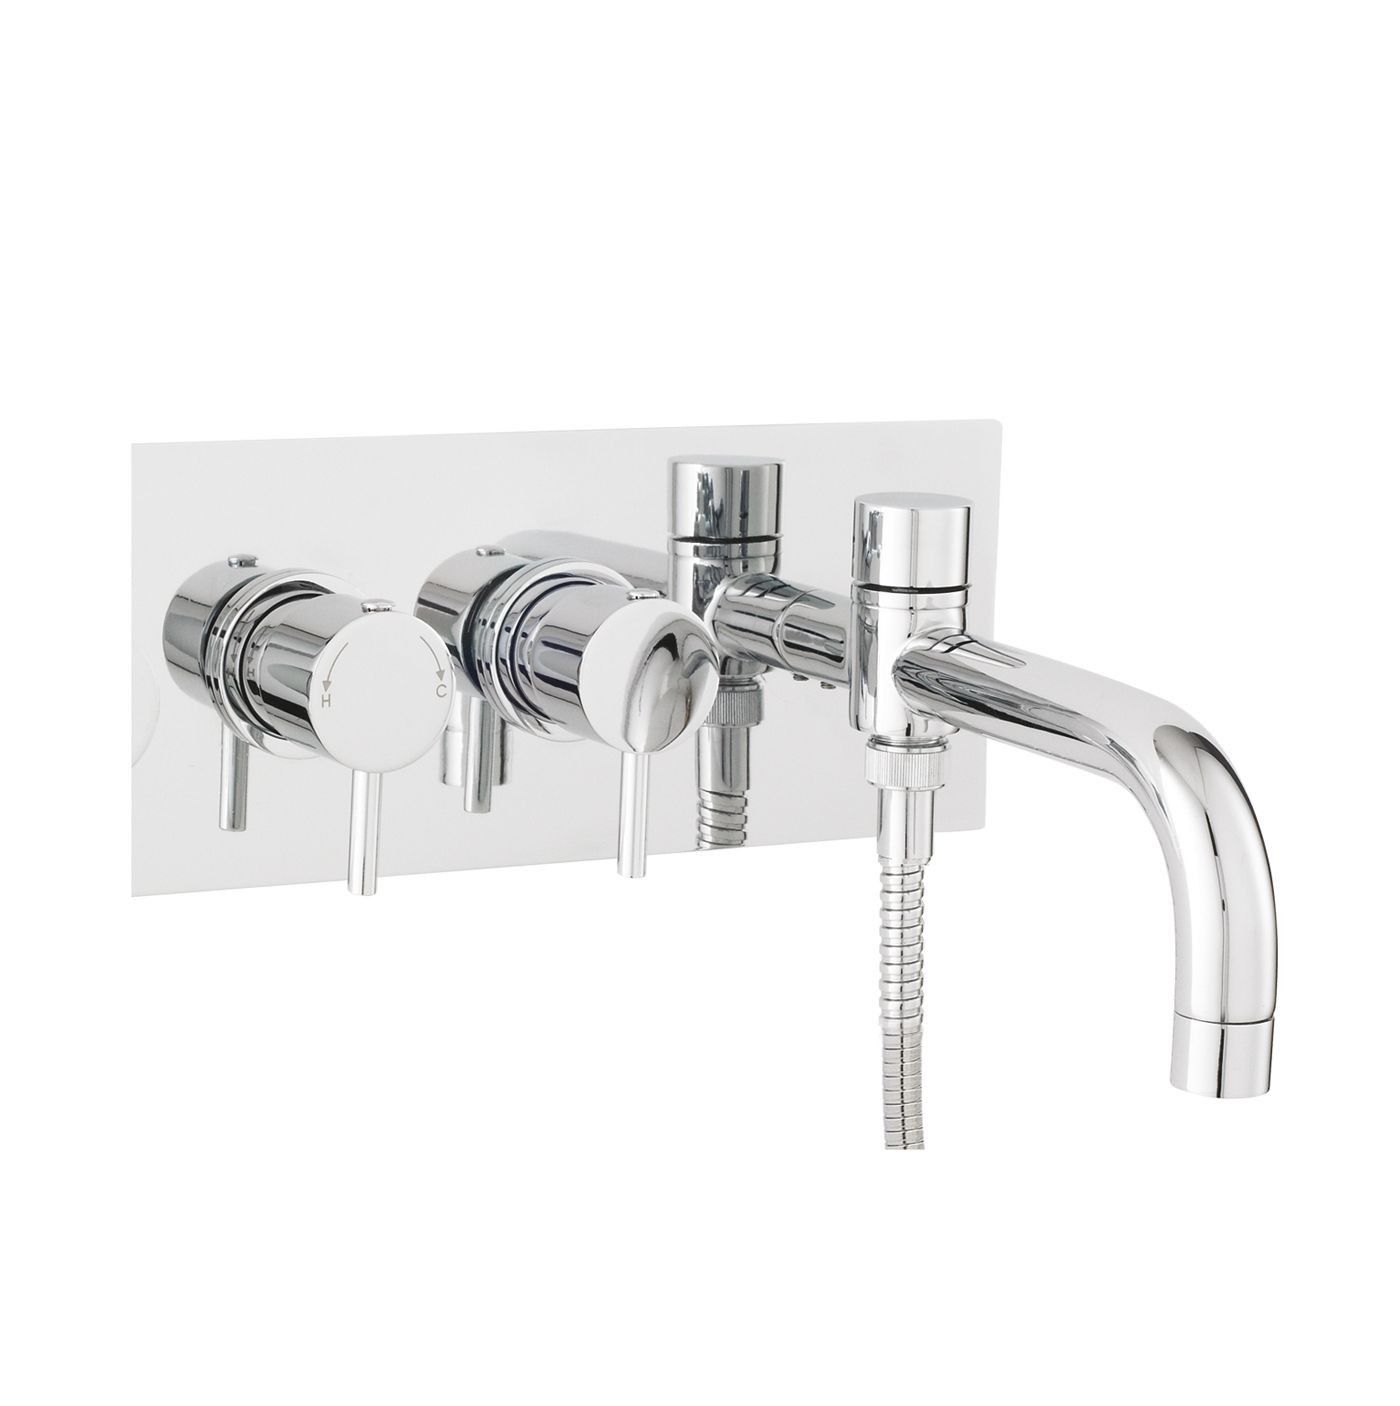 wall mounted bathtub faucets with diverter wall mounted bathtub faucets with diverter designs terrific wall mount bathroom sink faucet oil rubbed 1400 x 1406